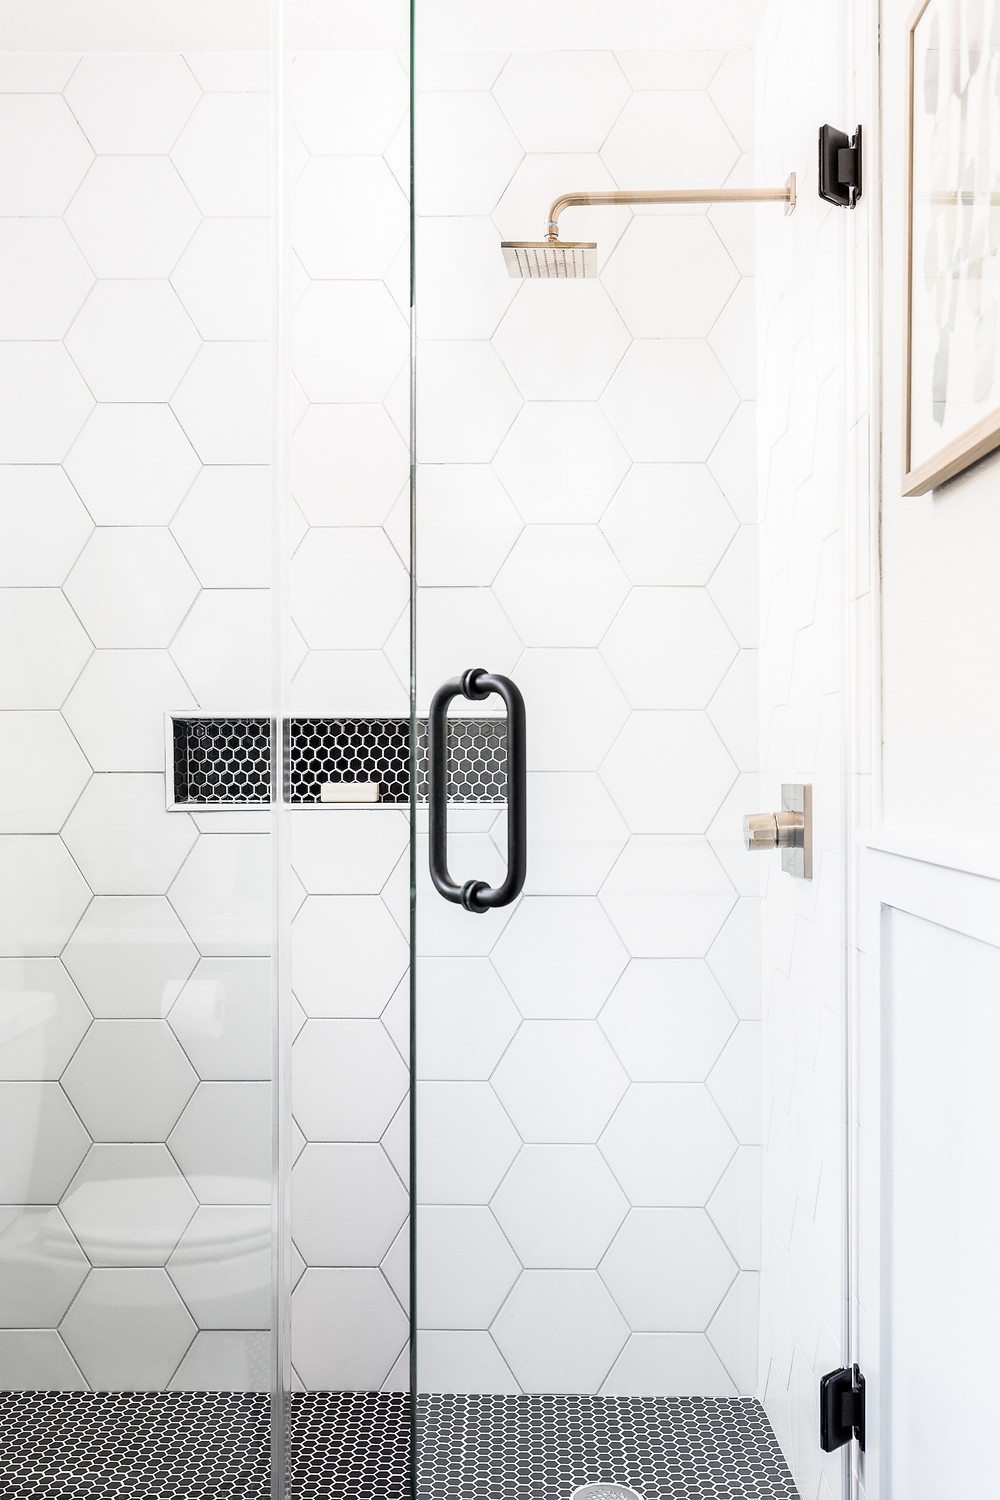 Shower with white hex tiles and black mosaic hex tiles on shower floor